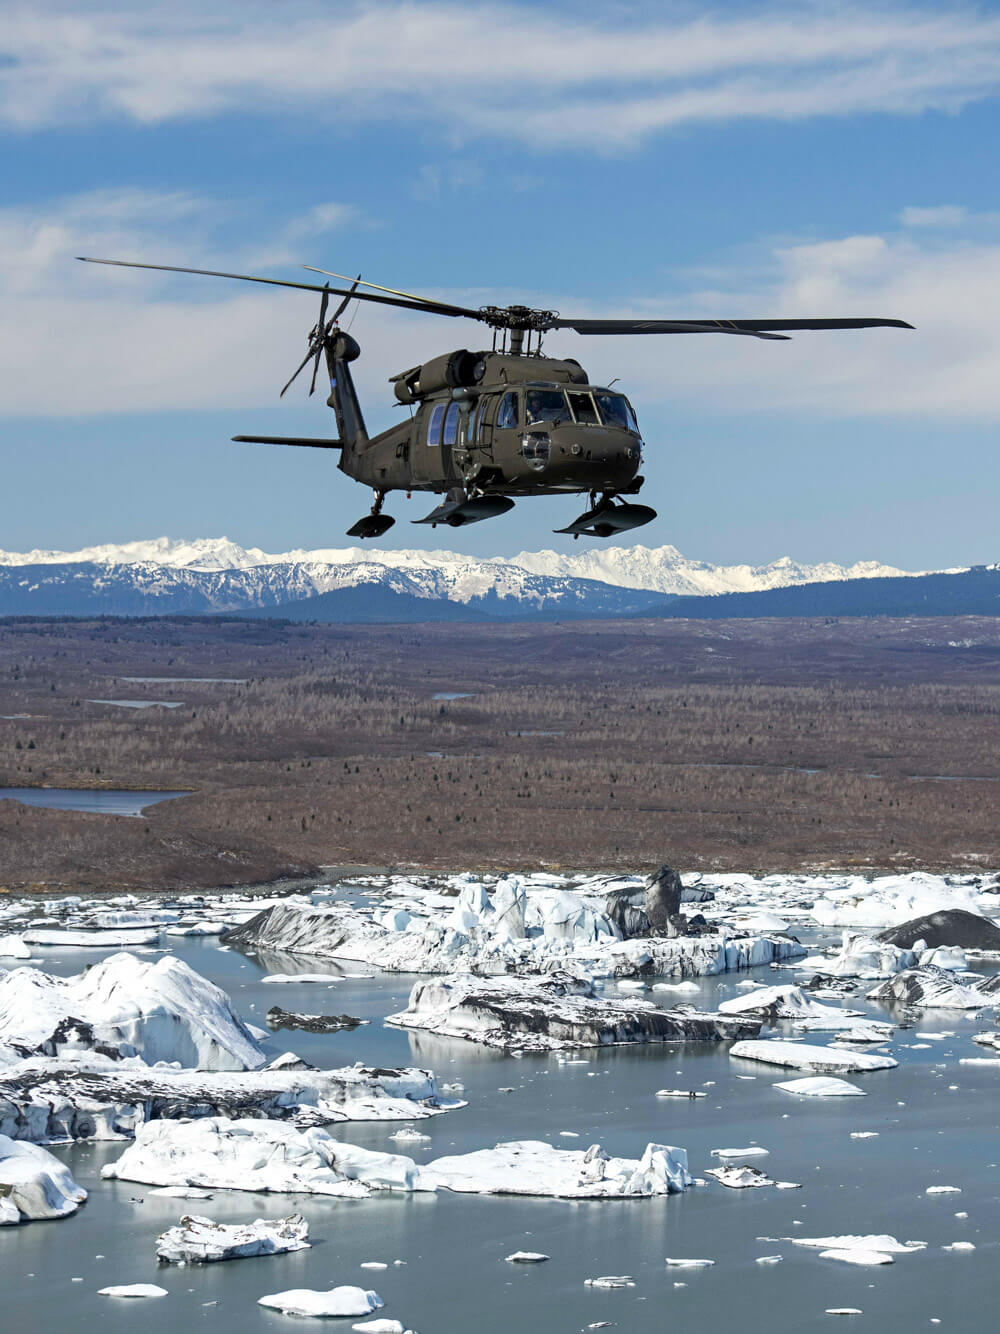 A 207th Aviation Battalion Alaska Army National Guard UH-60 Black Hawk makes a cross-country training flight from Anchorage to Juneau, Alaska, April 26, 2019. Alaska Army National Guard photo by 1LT Benjamin Haulenbeek